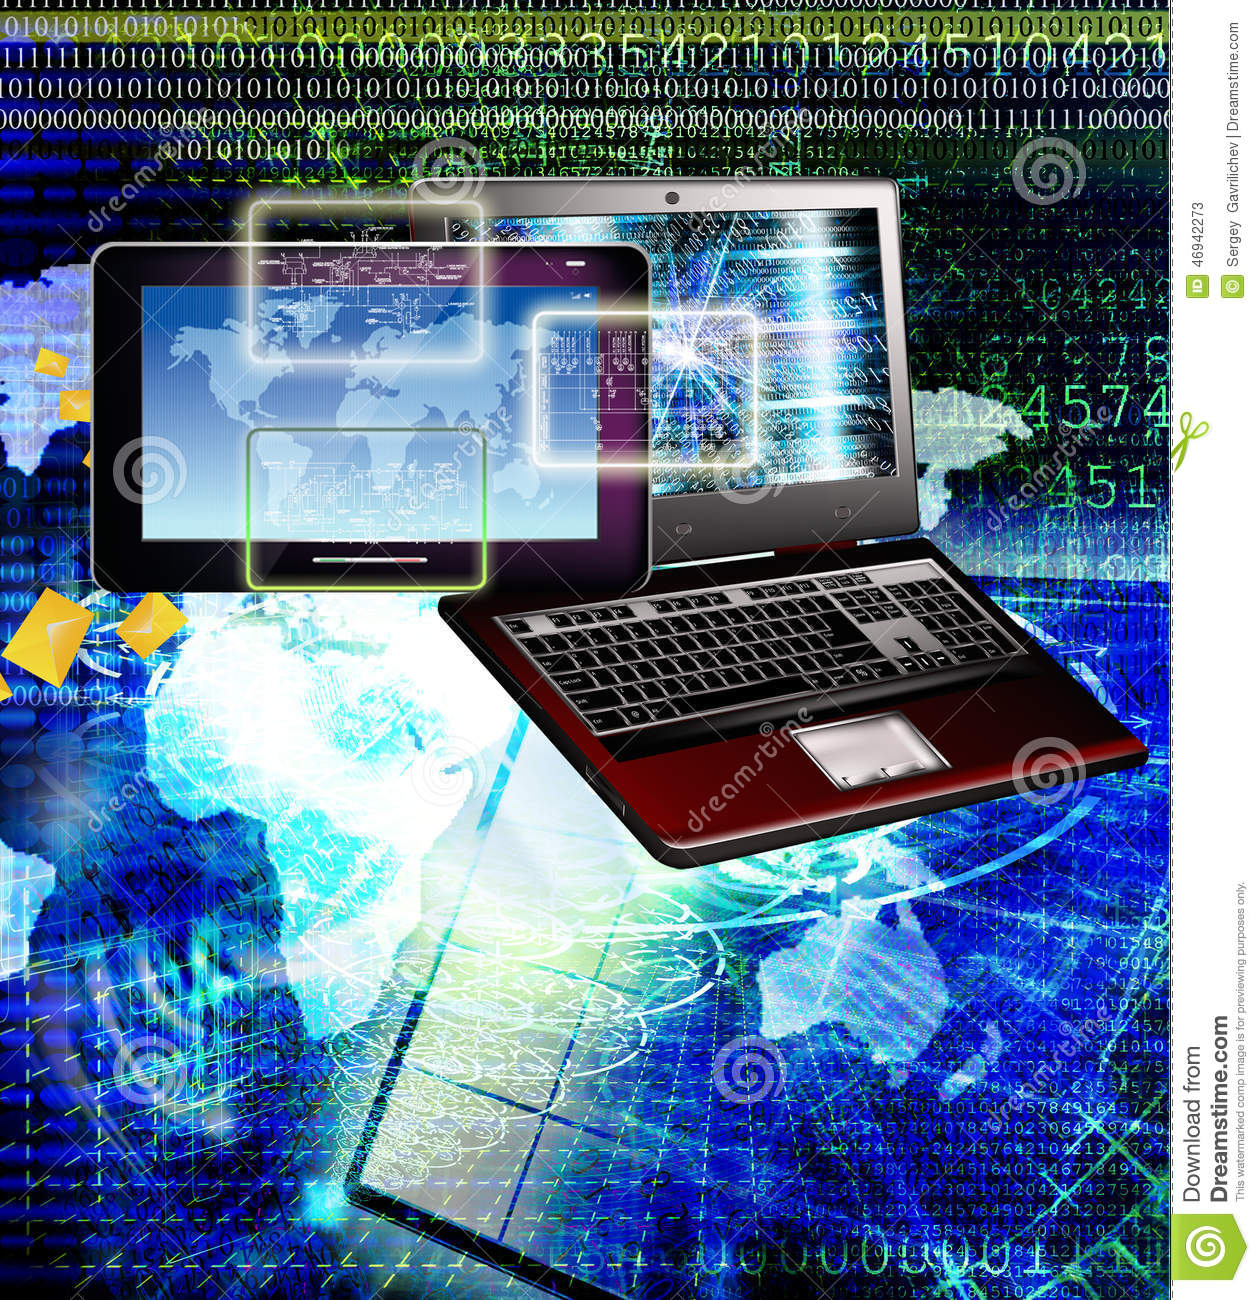 connect generation new computer technology connection  stock image